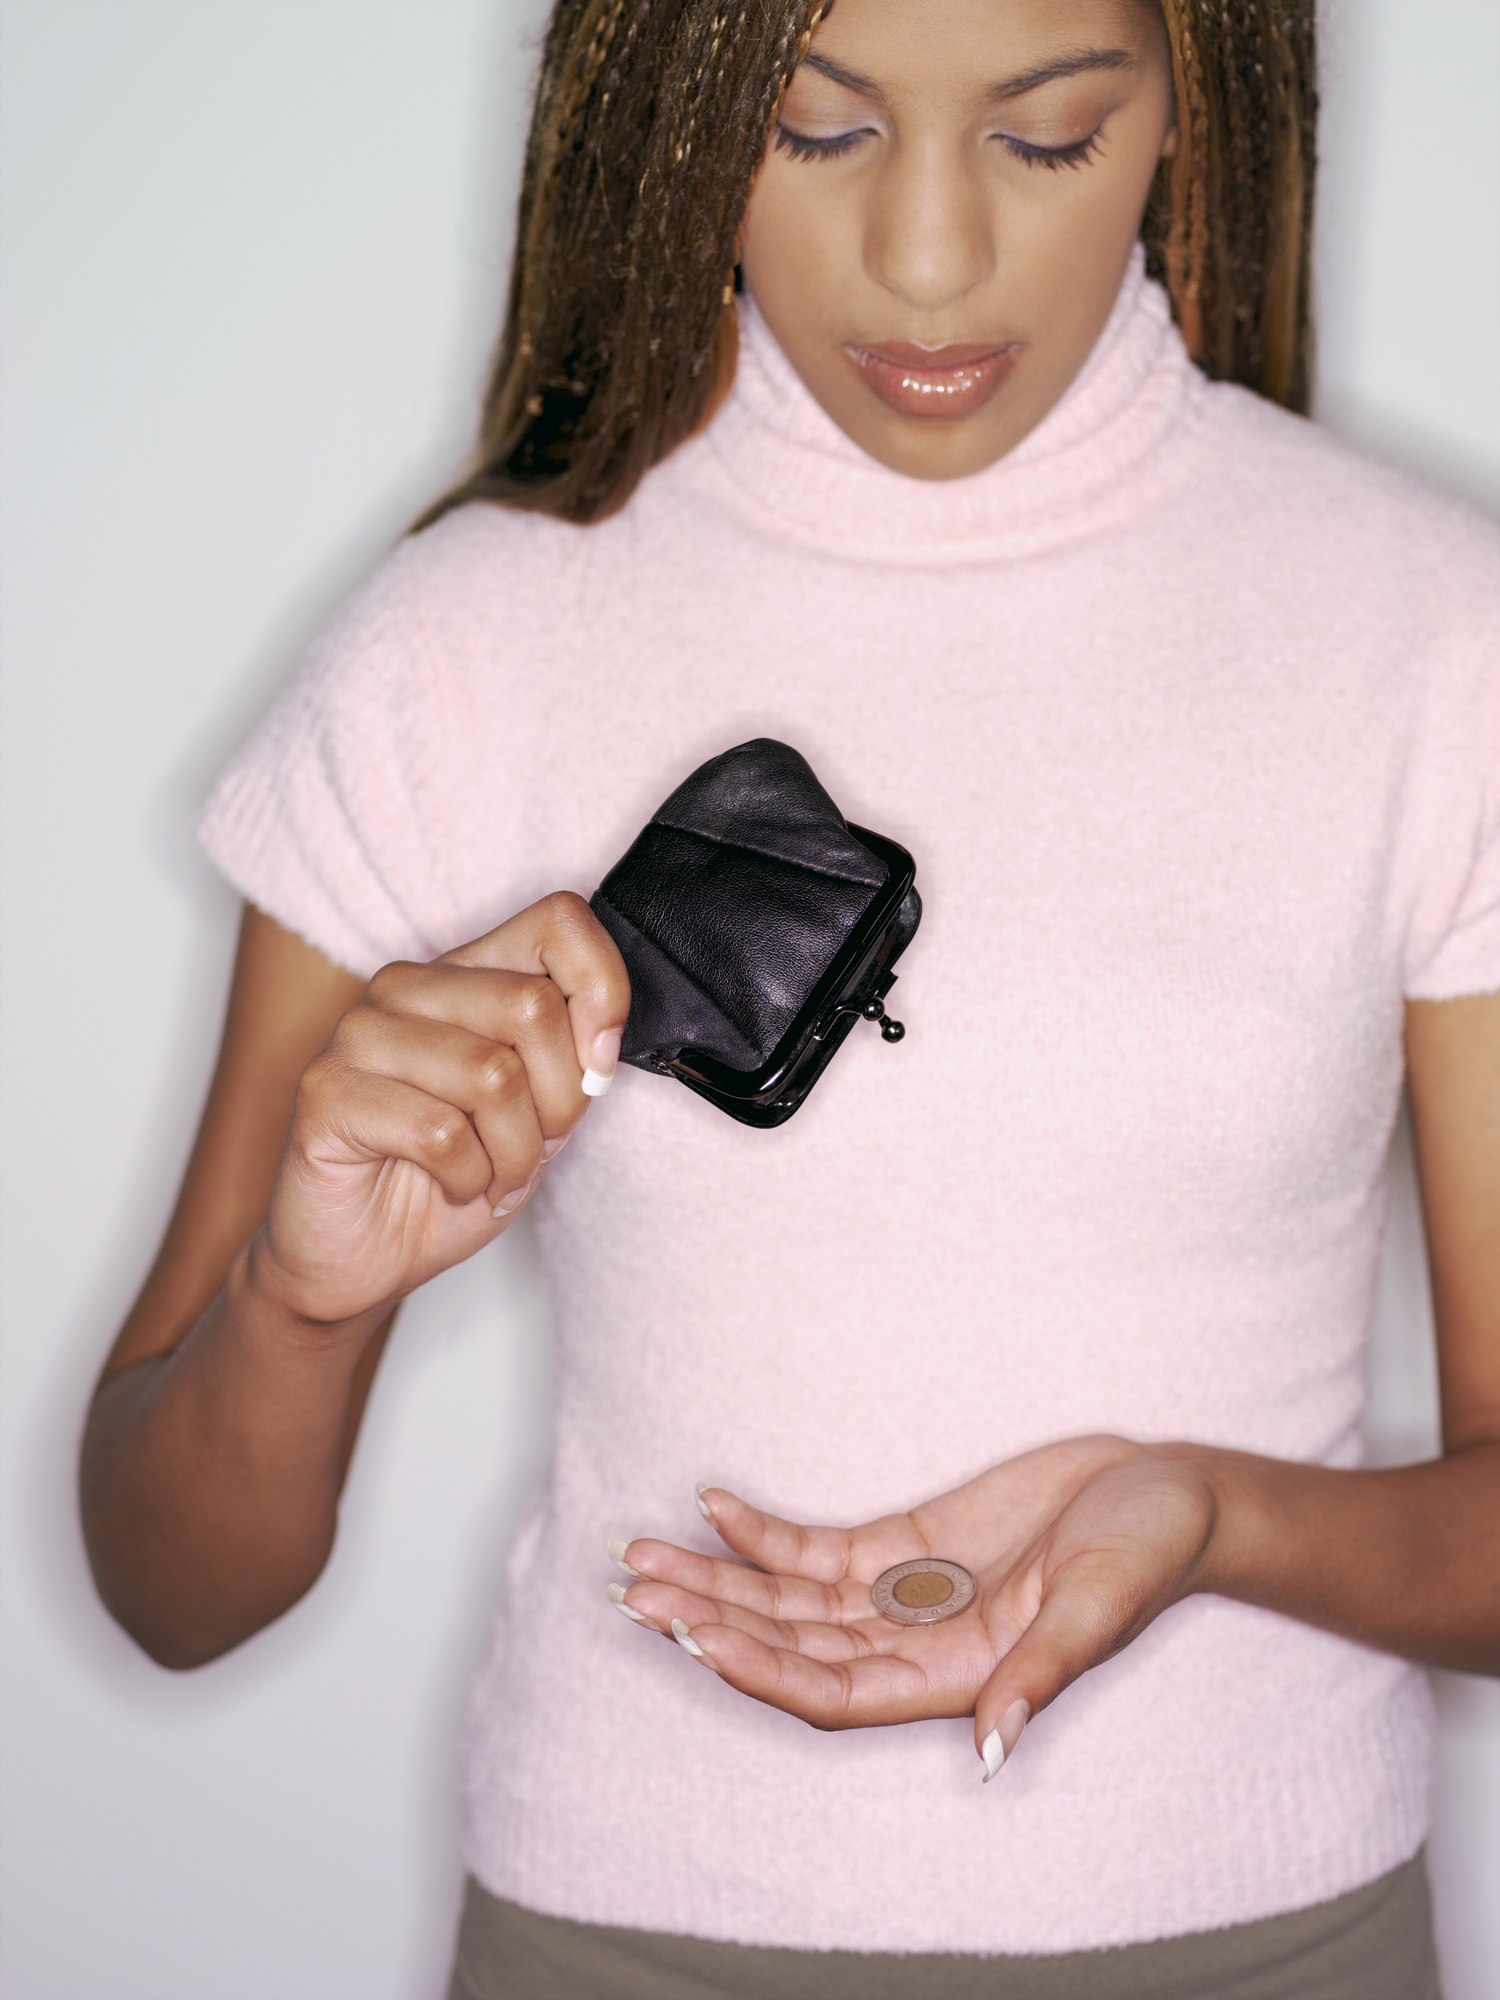 Woman holding coin purse and canadian coin